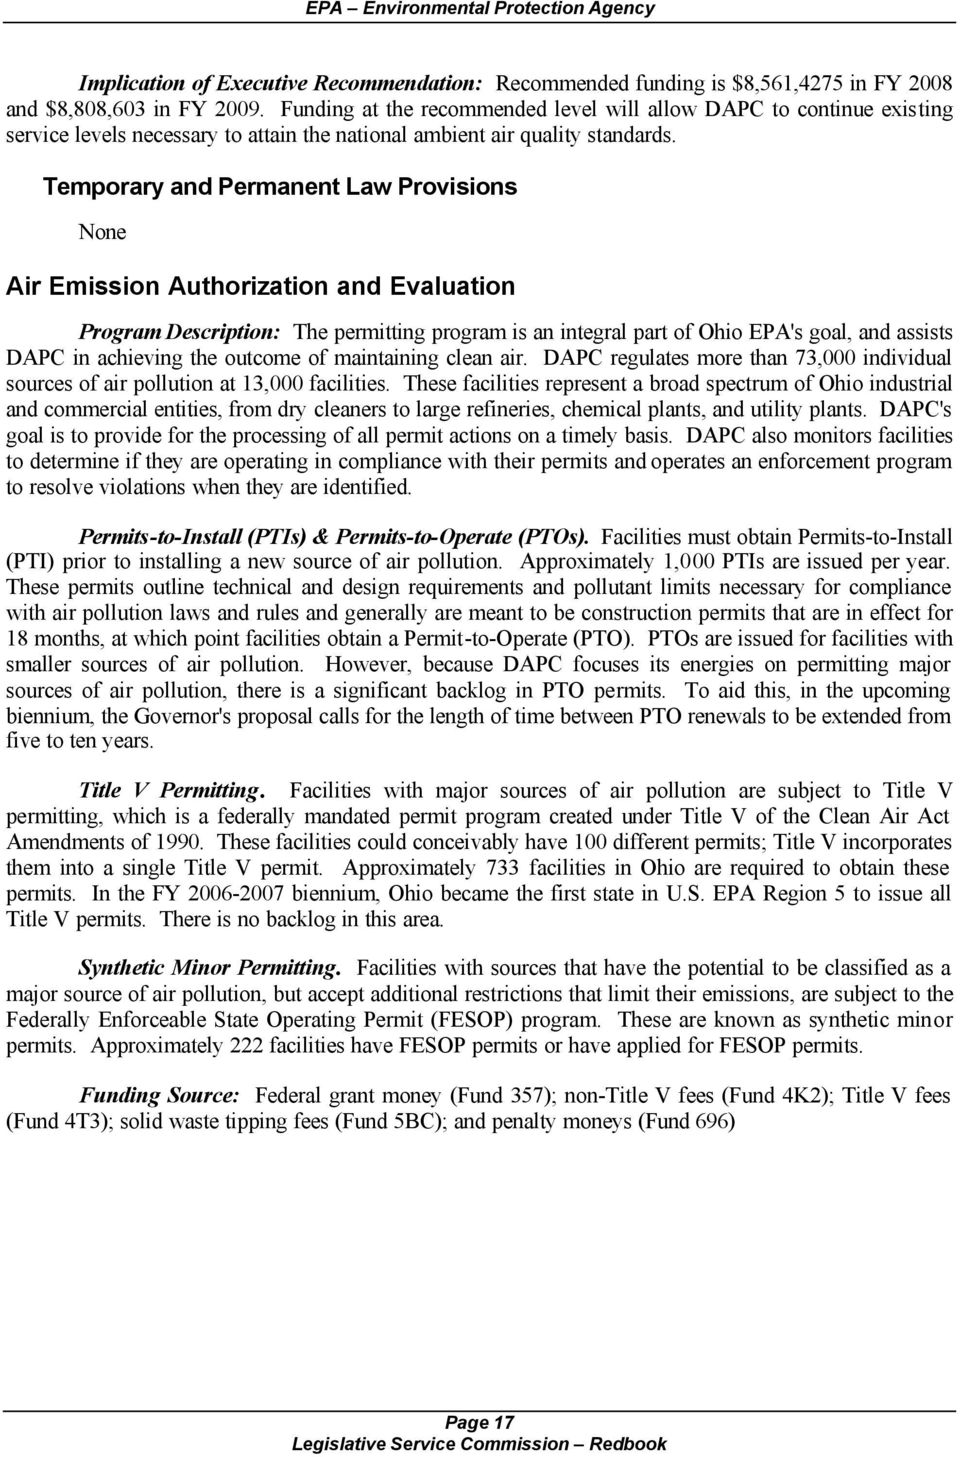 Temporary and Permanent Law Provisions None Air Emission Authorization and Evaluation Program Description: The permitting program is an integral part of Ohio EPA's goal, and assists DAPC in achieving